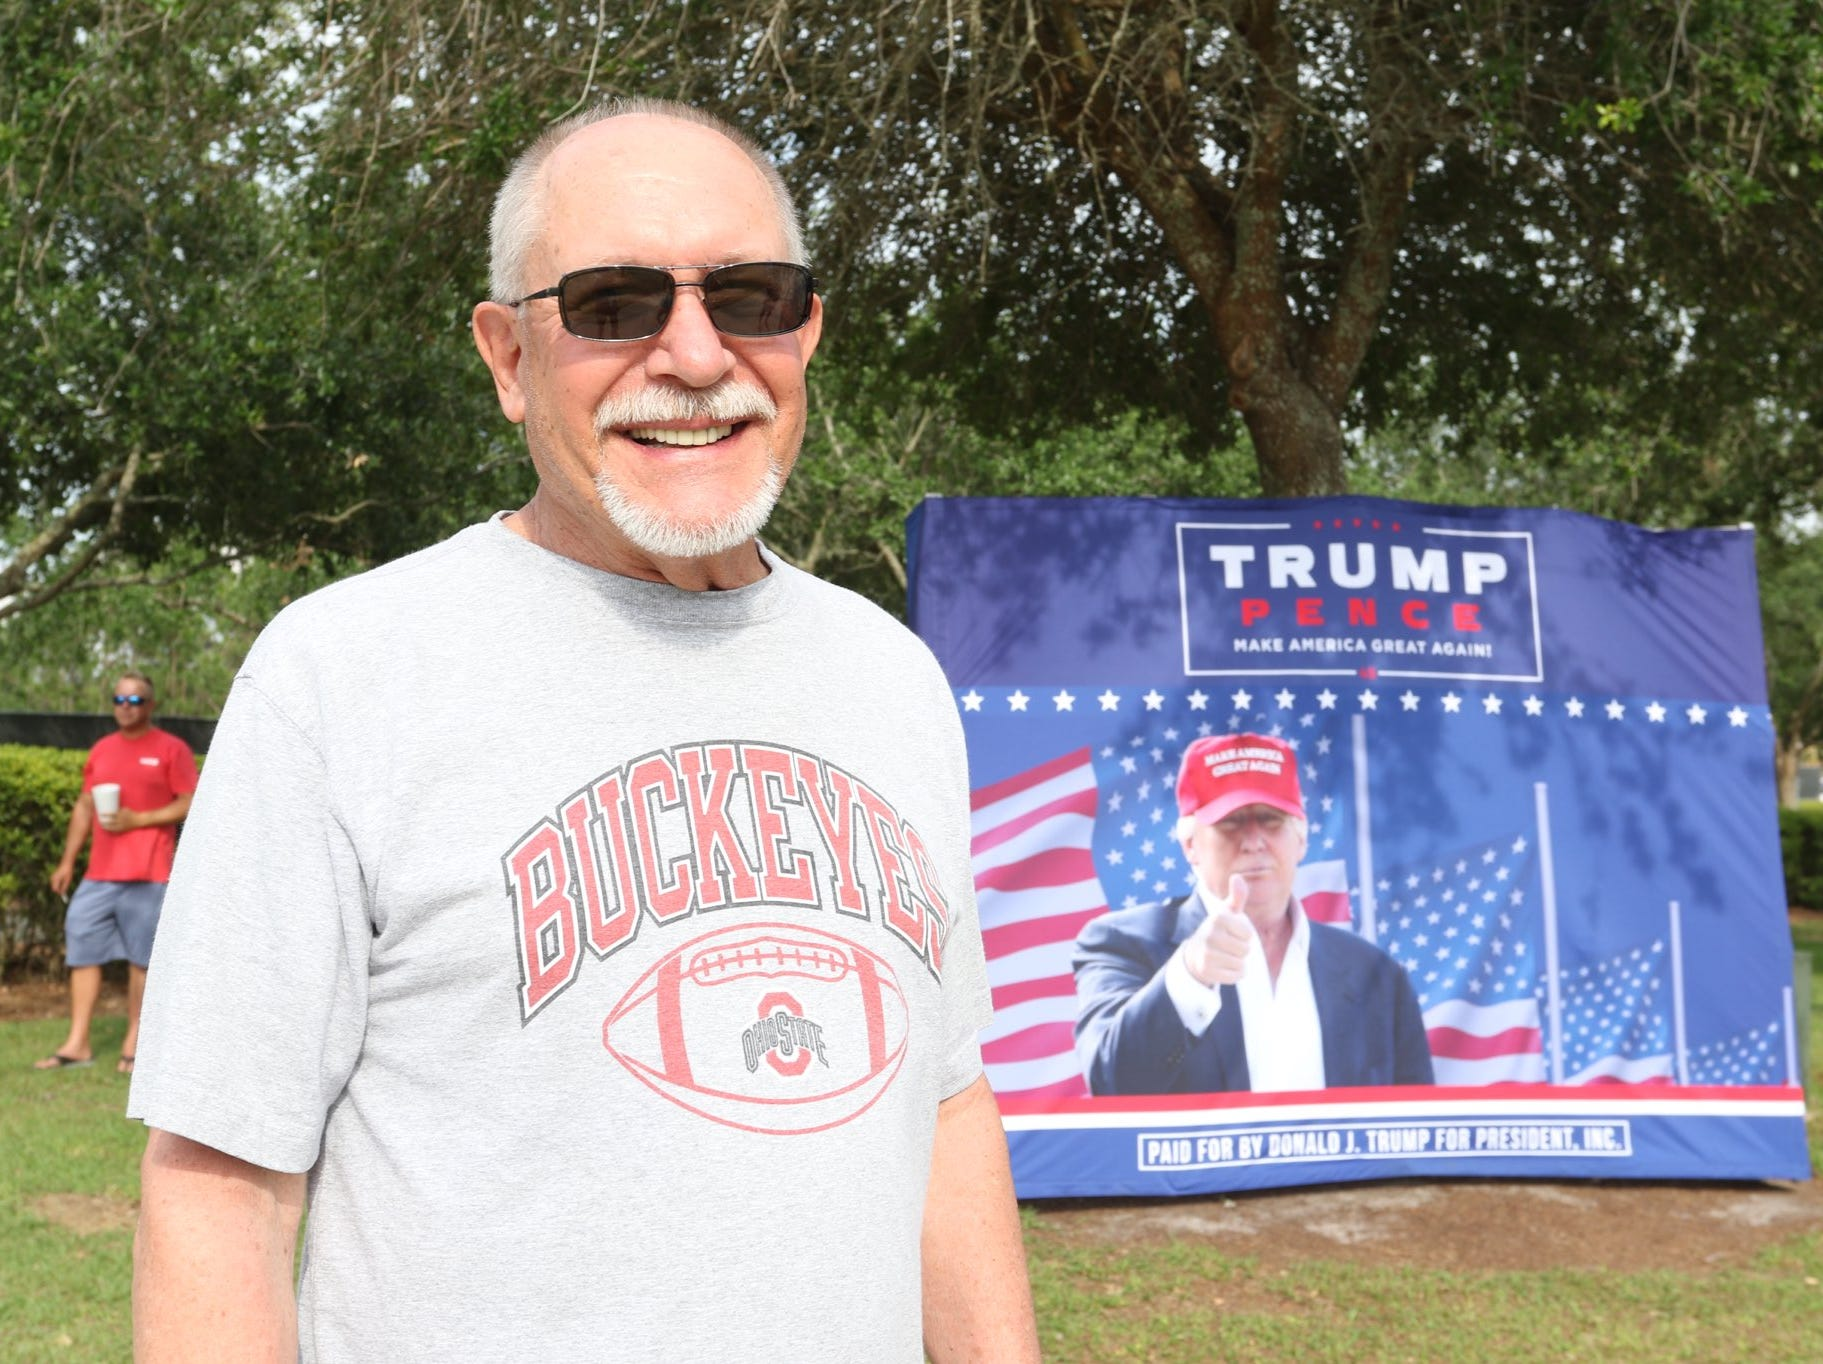 Supporters begin lining up for President Donald Trump's rally in Panama City, Fla., on Wednesday, May 8, 2019.